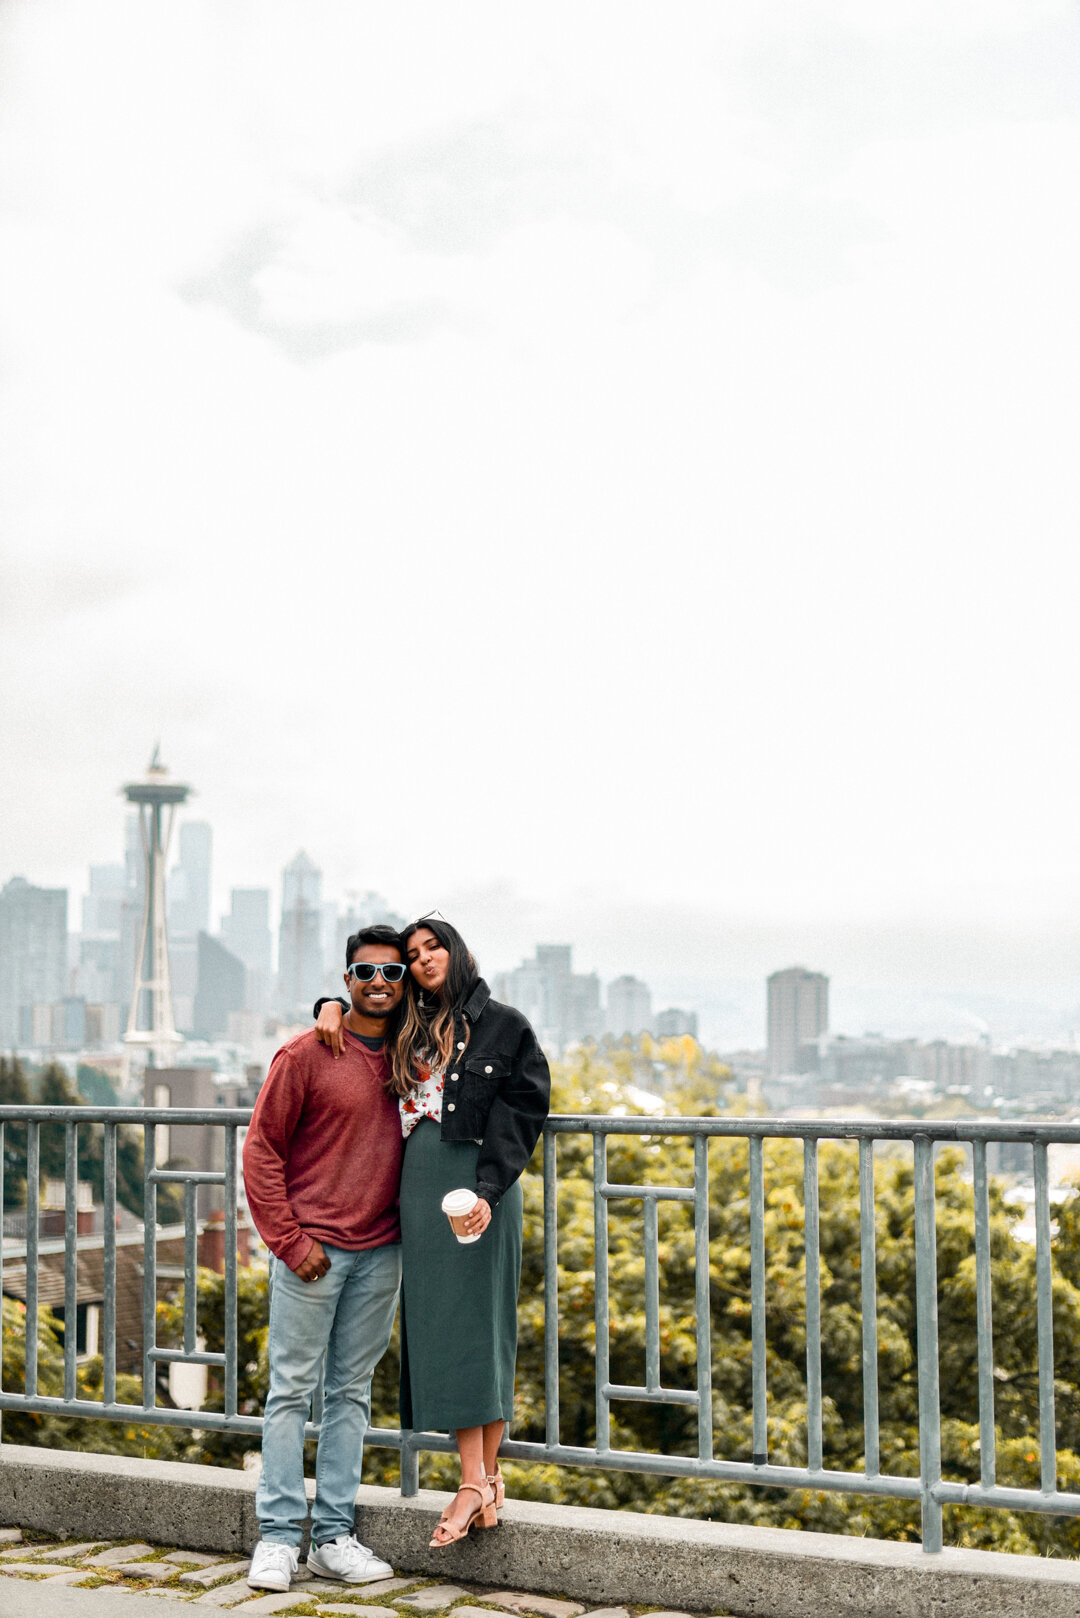 kerry-park-seattle-travel-guide 3